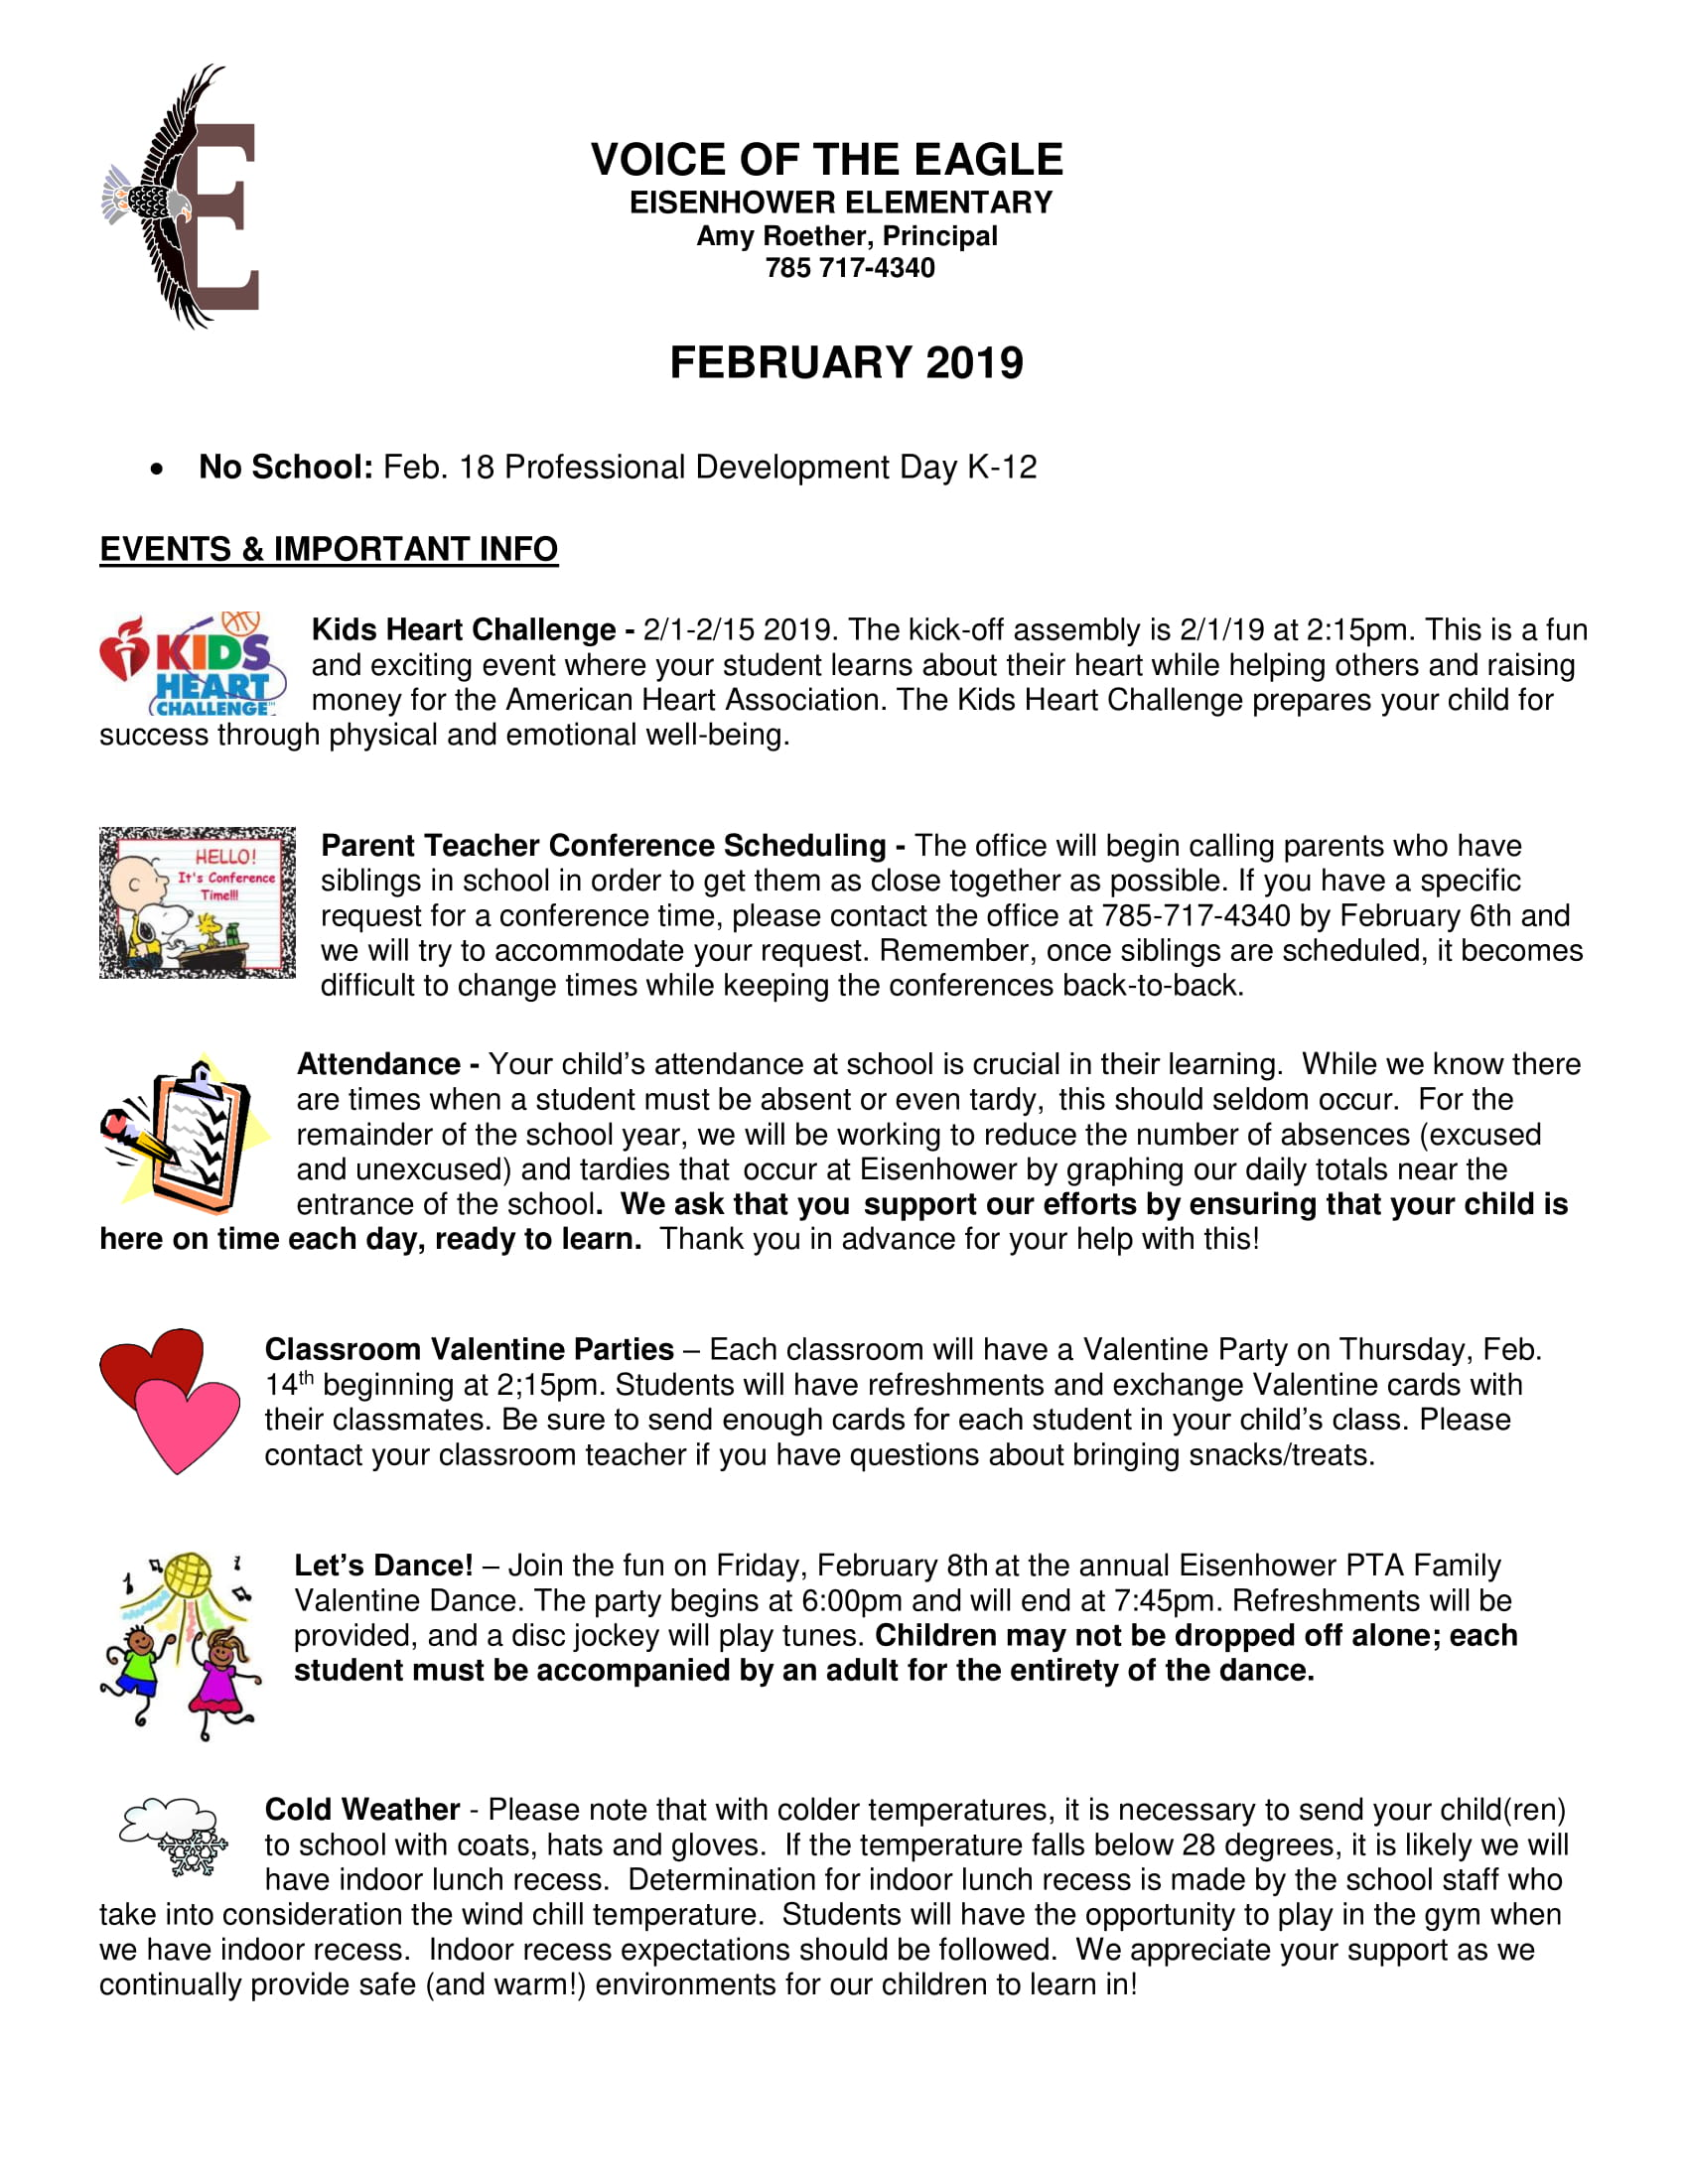 Picture of February Newsletter